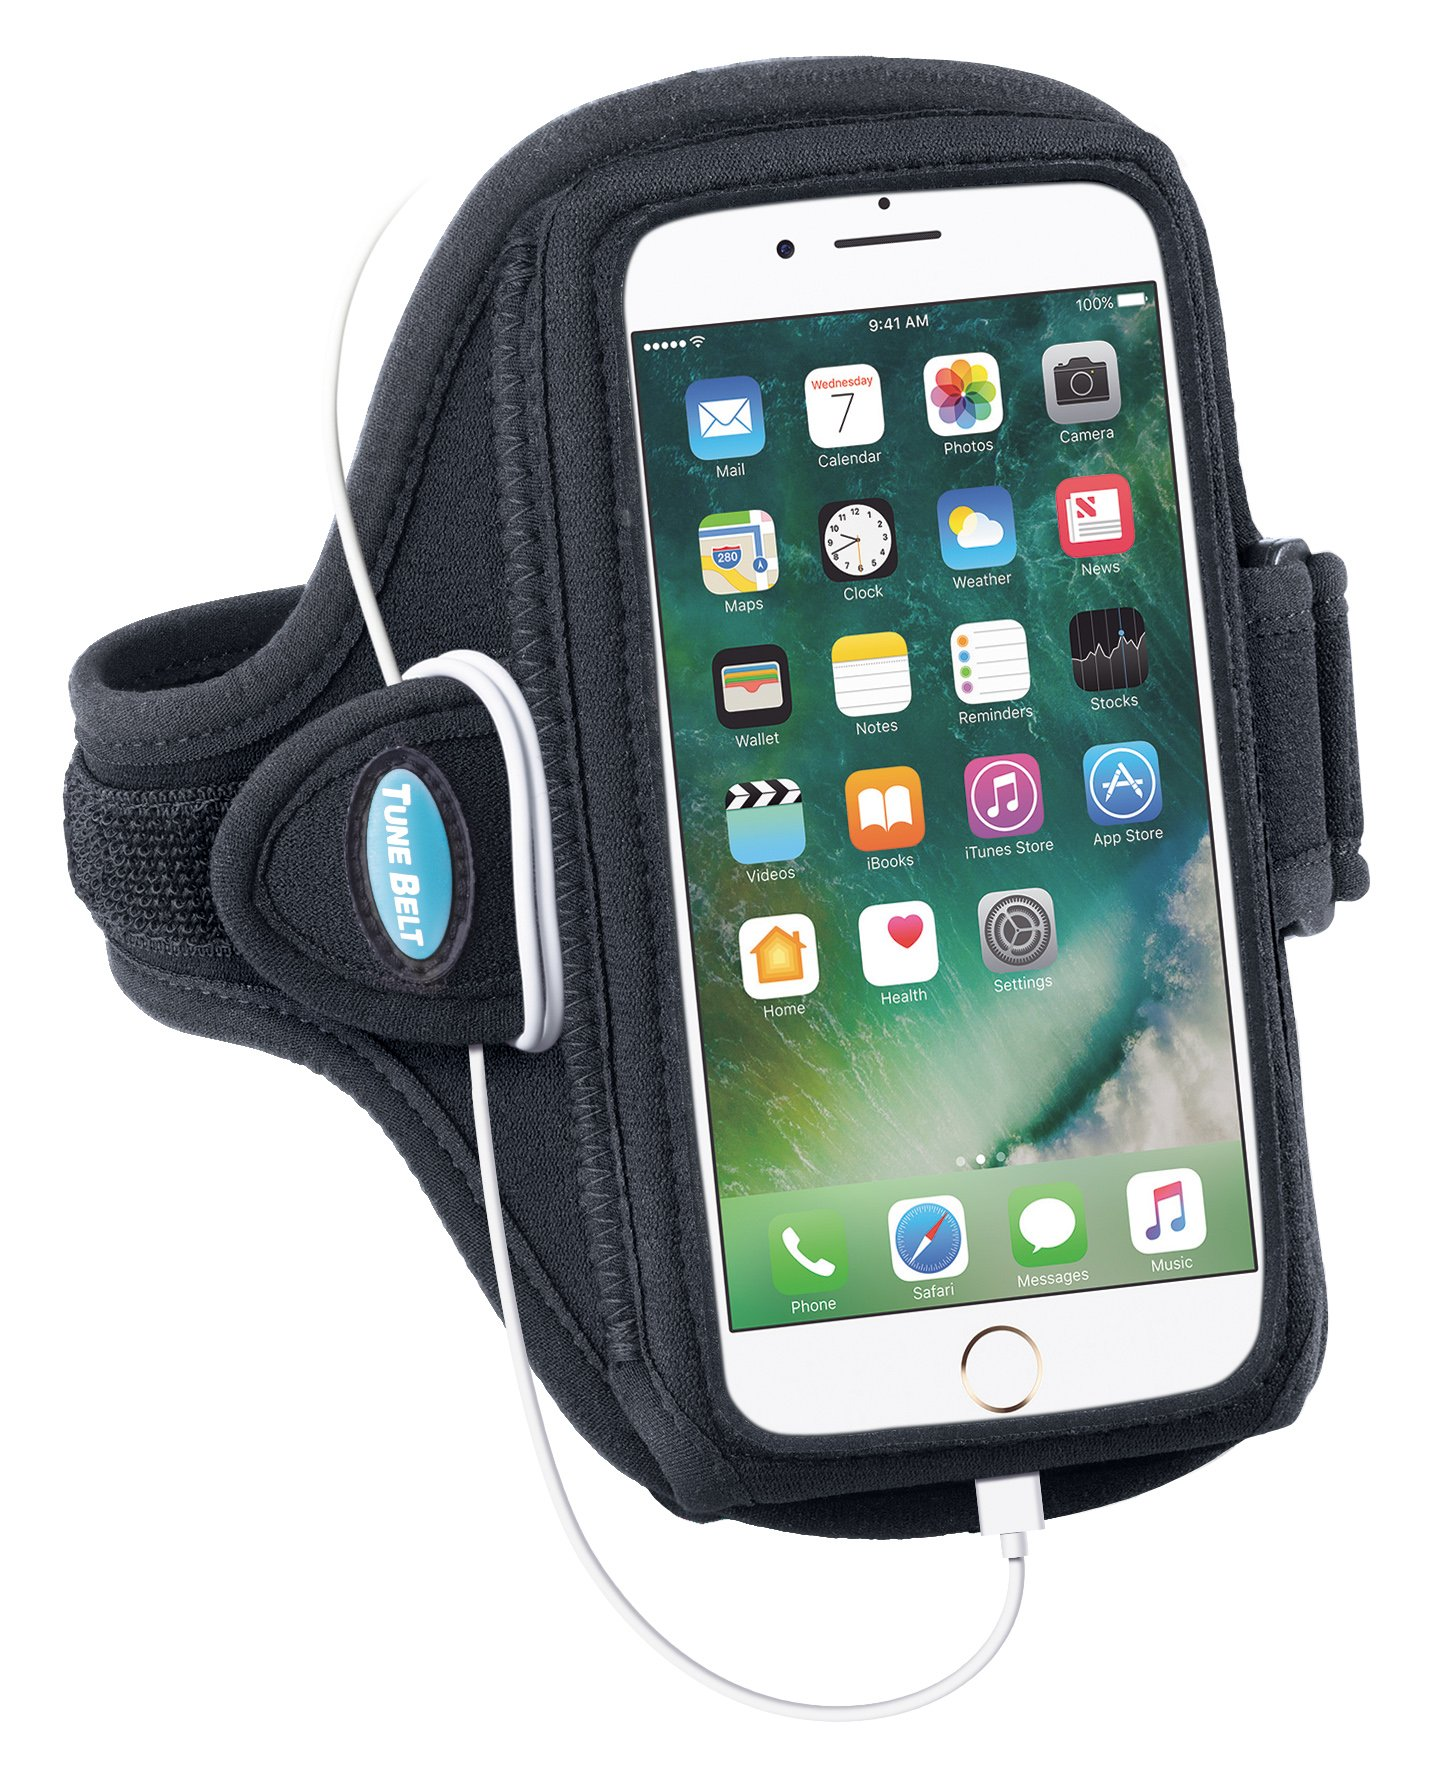 Armband for iPhone 6 6s 7 8 Plus, Samsung Galaxy Note 8 and S8 Plus - for Running, Jogging & Working Out - Water Resistant - for Women & Men [Black] See Fit Details